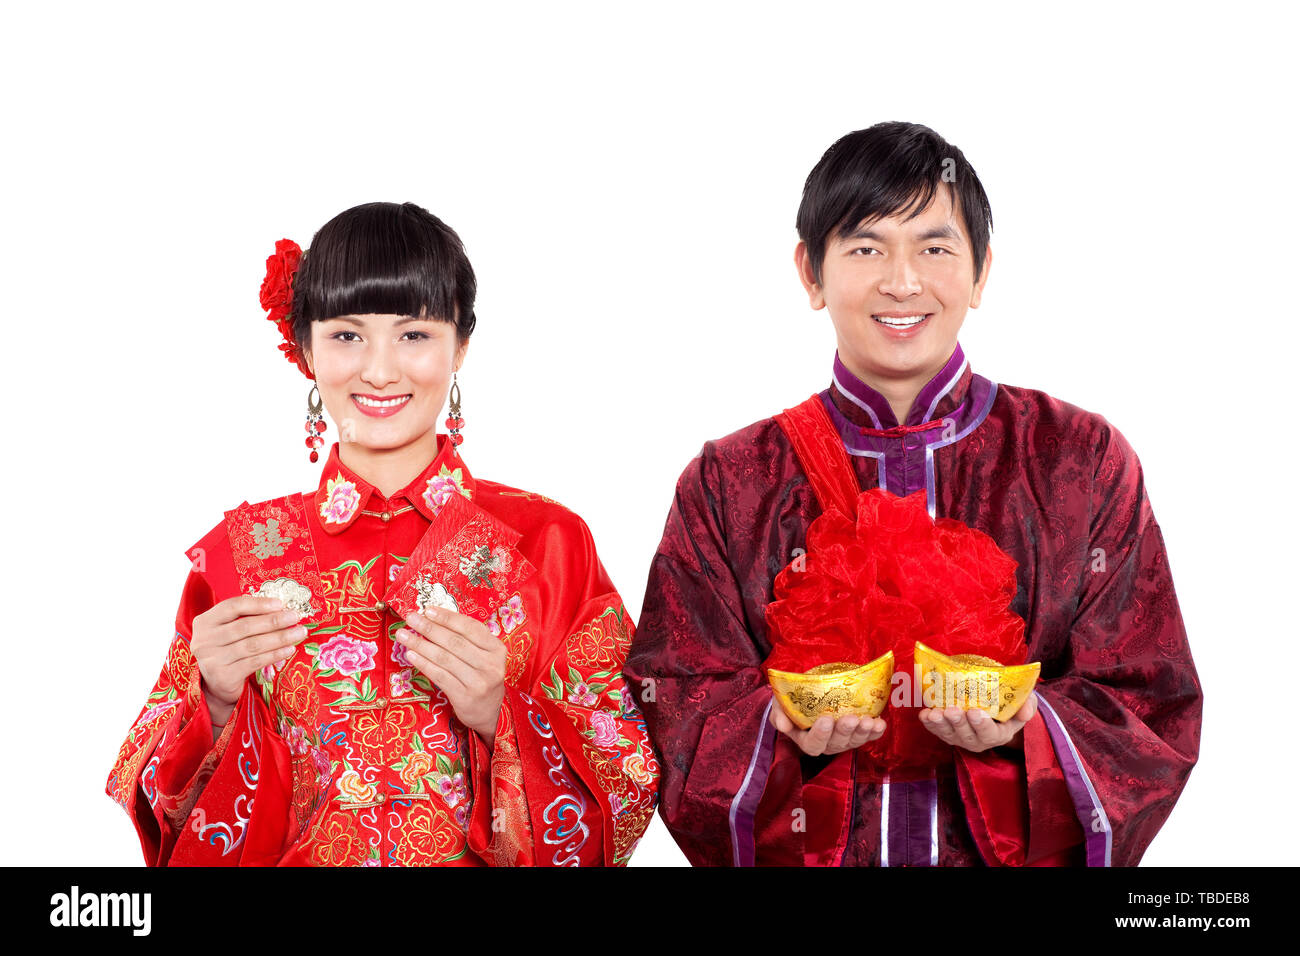 A couple's Chinese wedding. Stock Photo